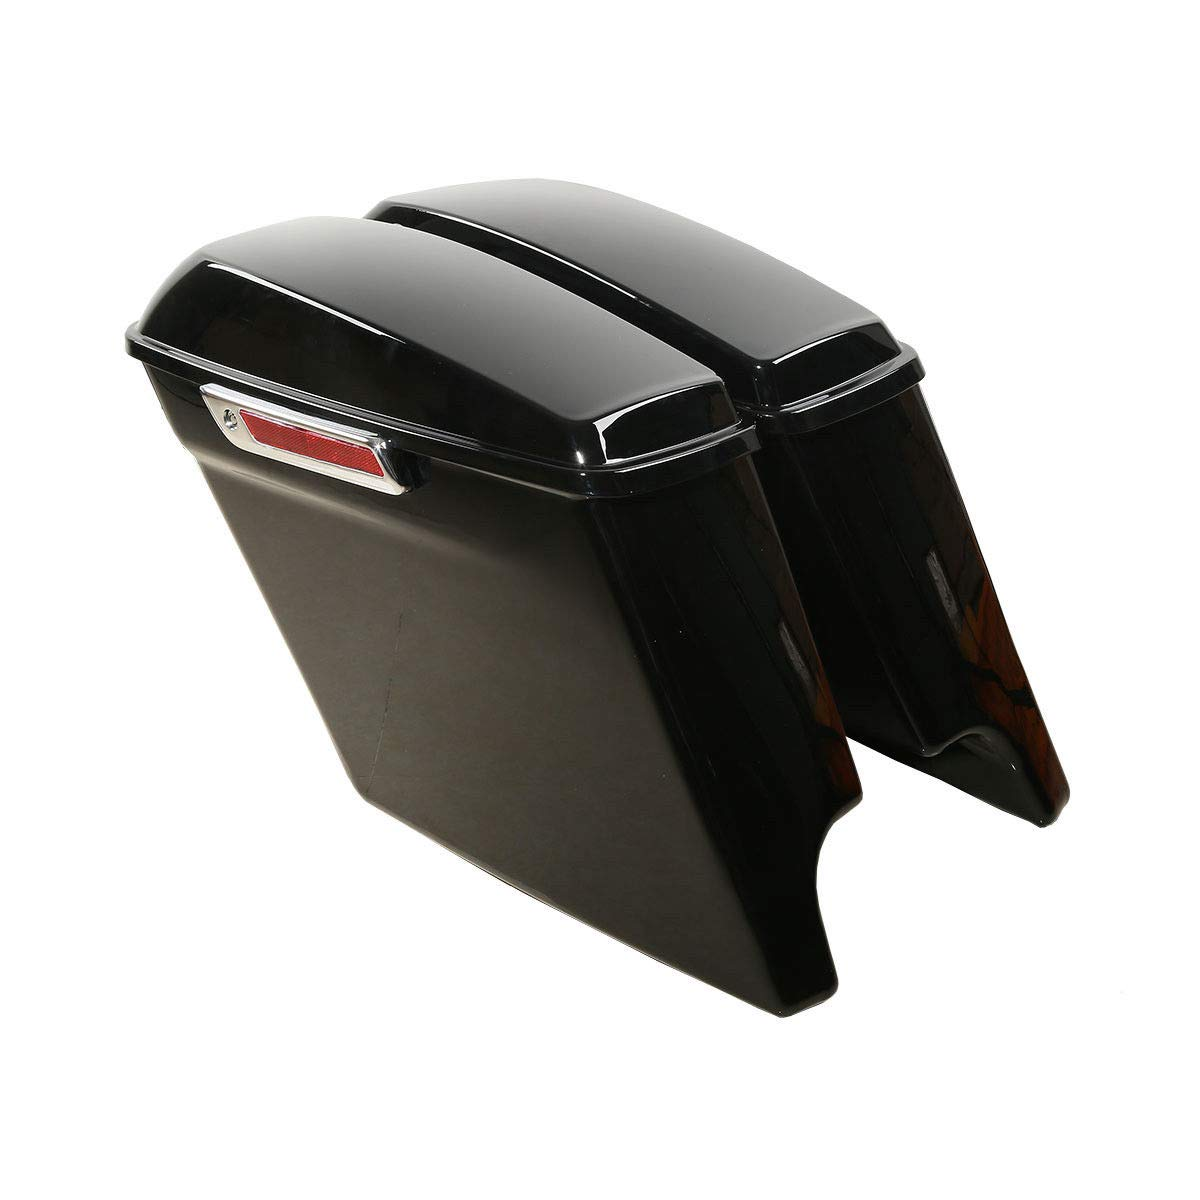 TCMT 5'' Stretched Extended Saddlebags W/Latch Key Fits For Harley Touring 2014-2019 by TCMT (Image #2)